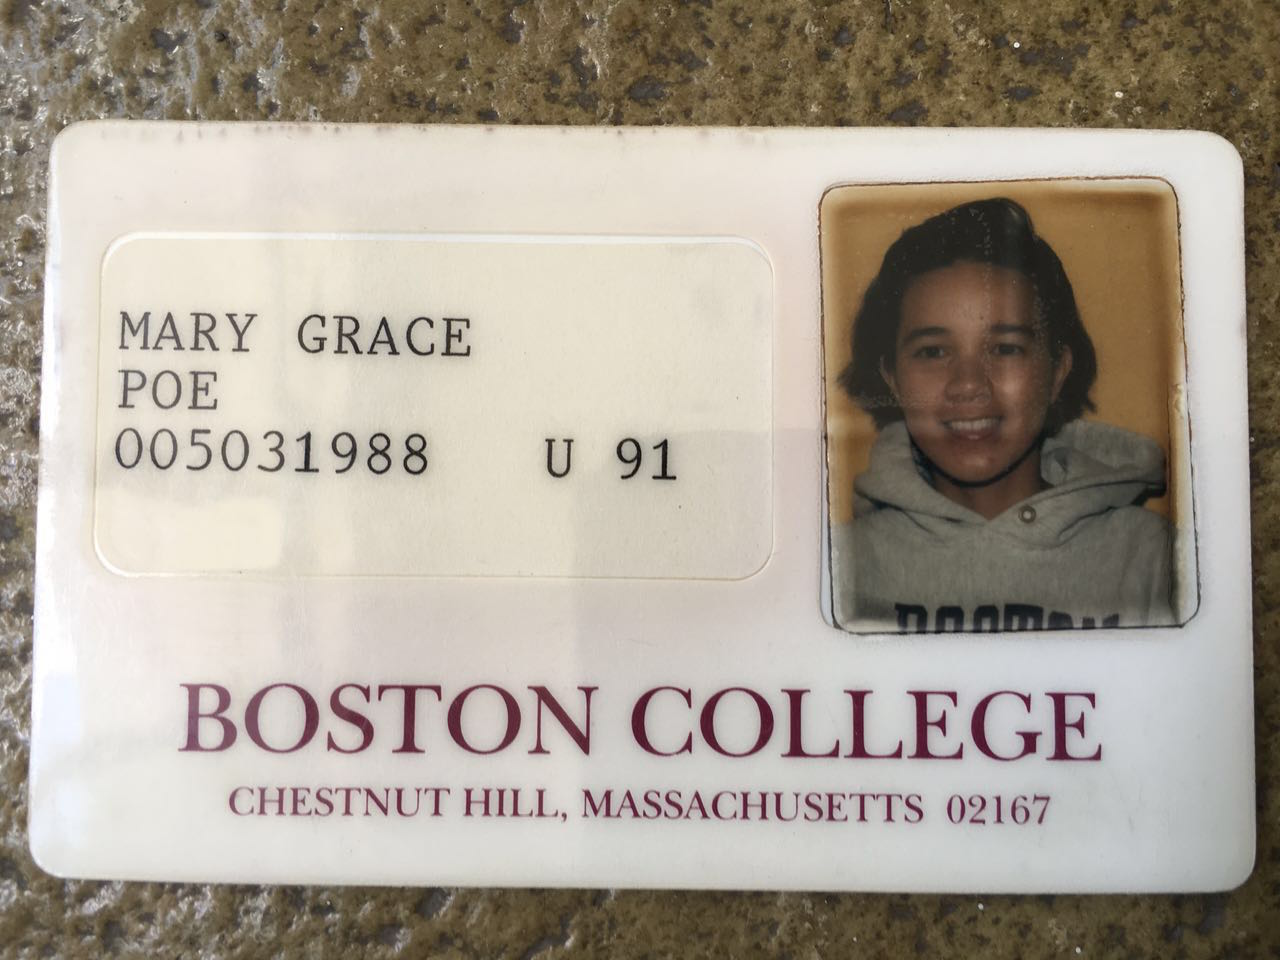 LOOK: 'Fake' SSN? Poe shows Boston College ID to disprove it